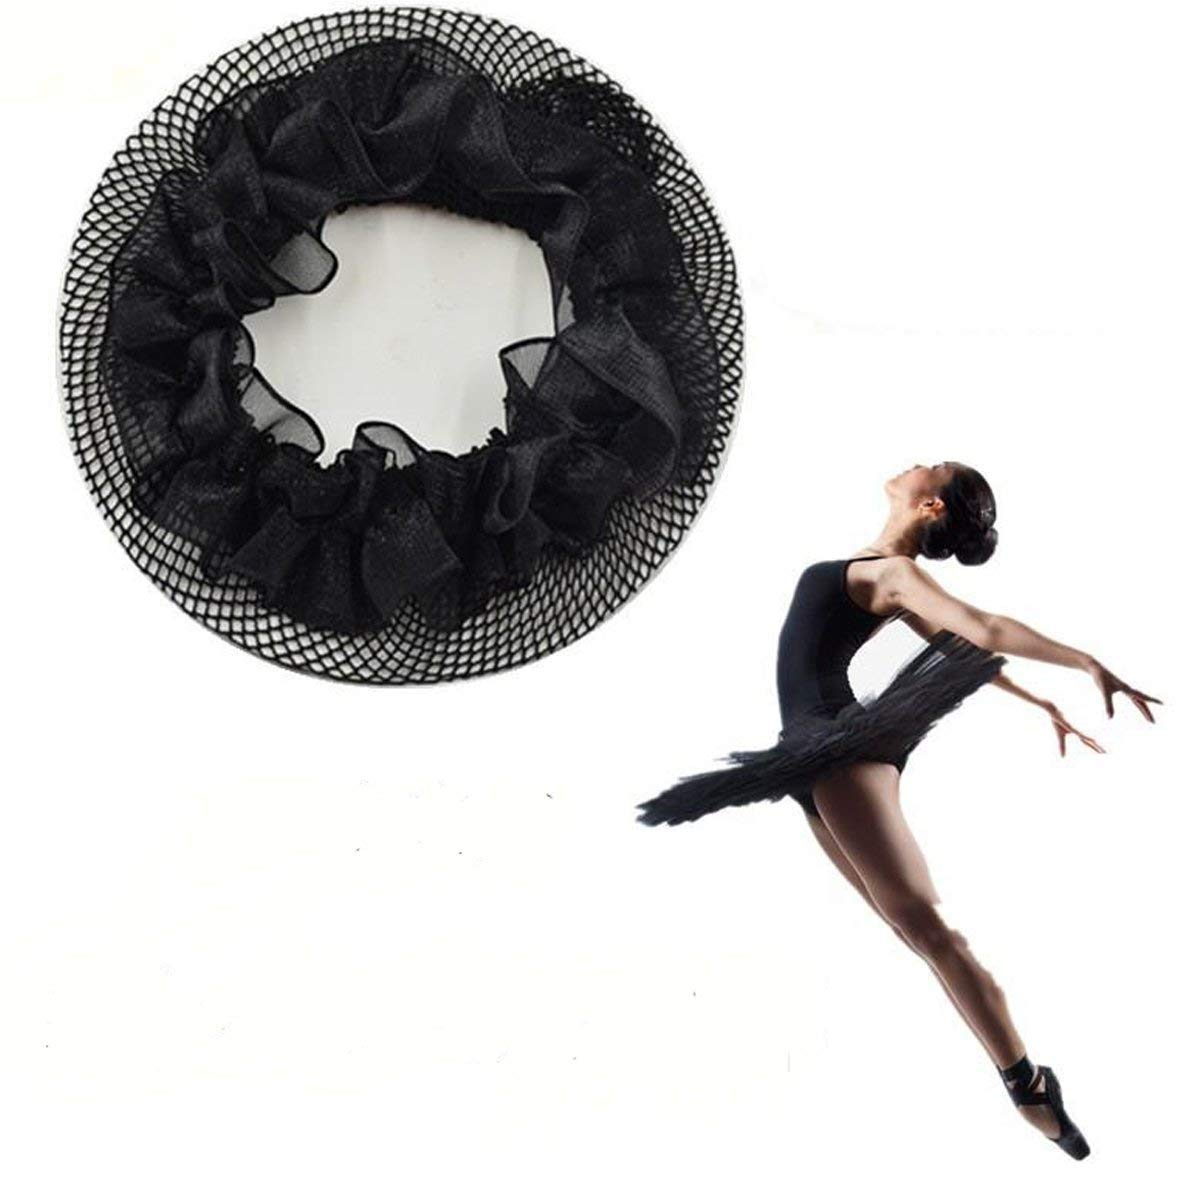 New8Beauty Hair Nets Black - Hair Accessories for Ballet Bun Cover Dance Skating Gymnastics Wedding Performance (3 Pack) NEWEIGHTS